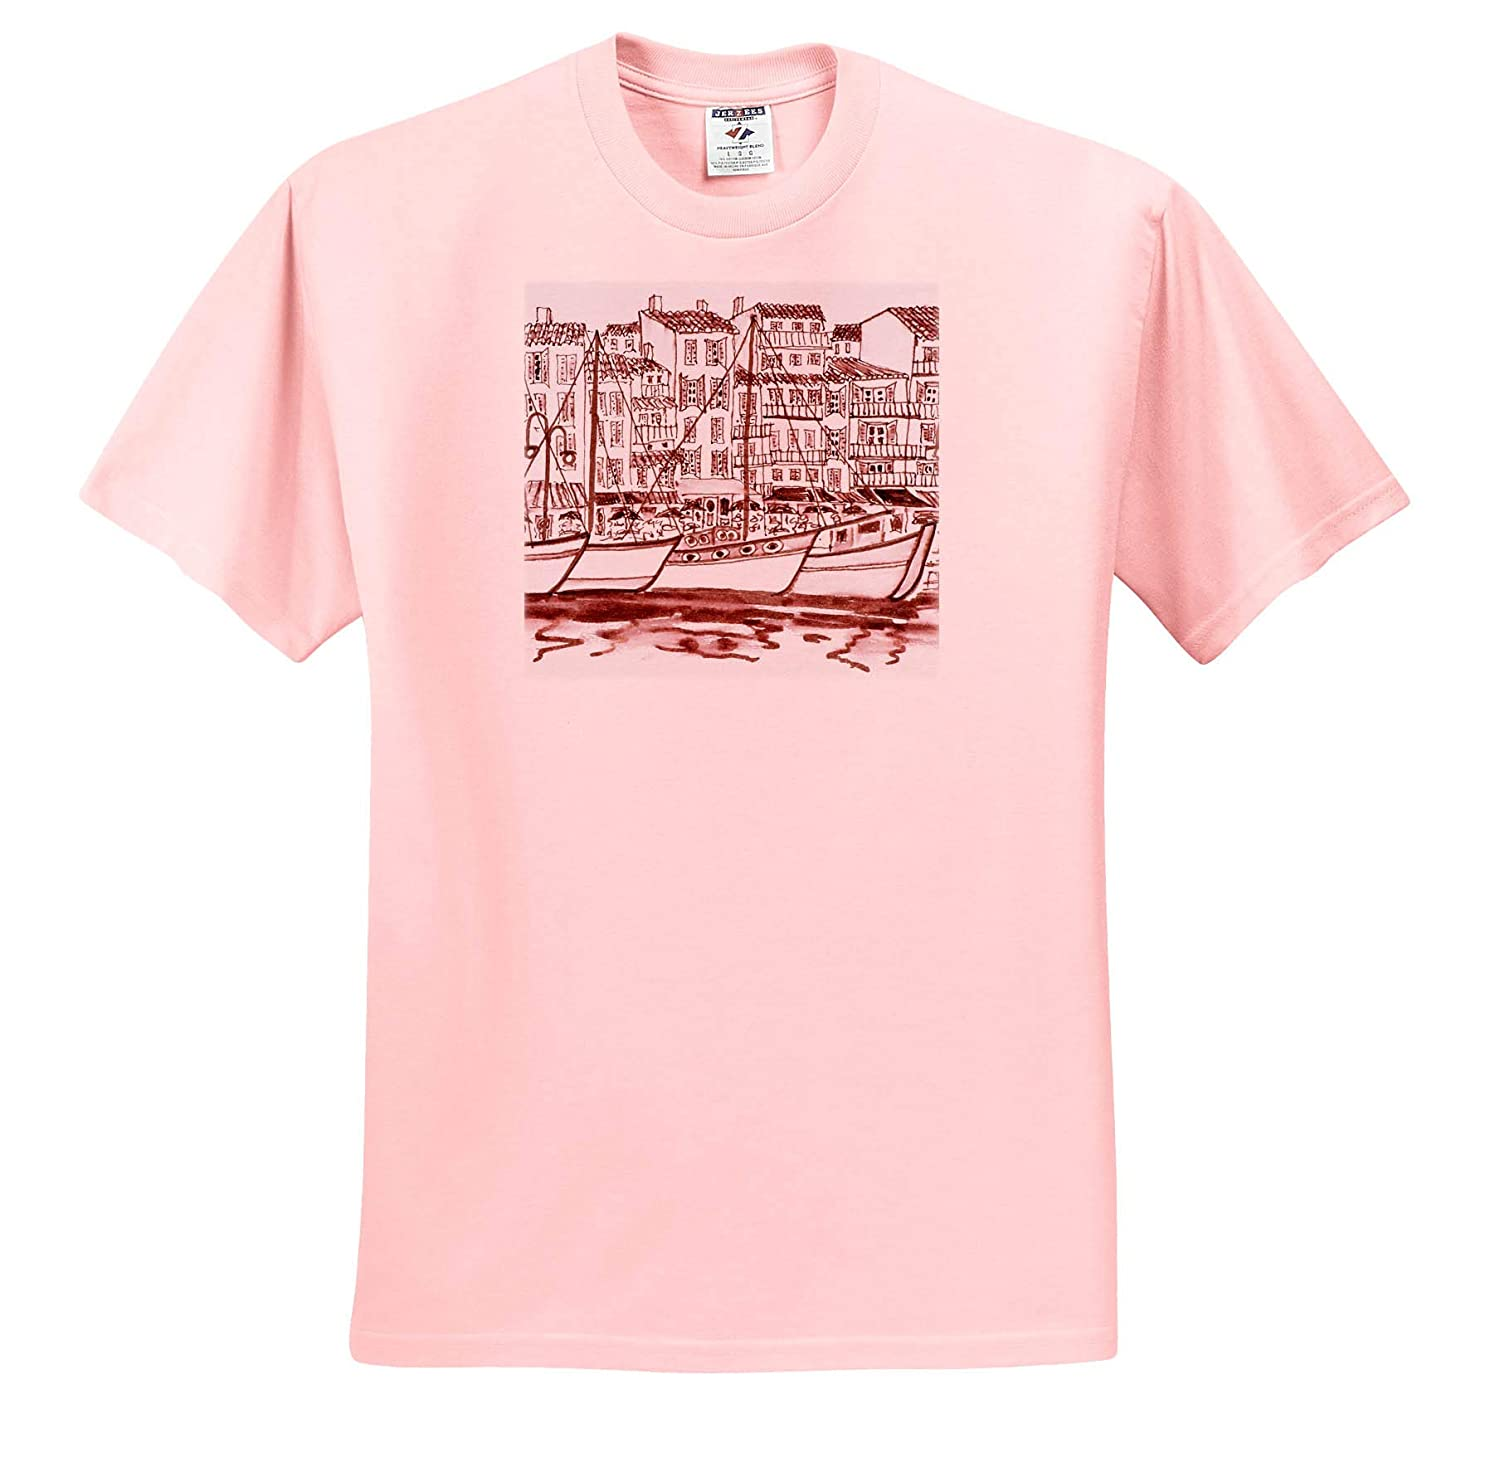 Sailboats moored in The Harbor Adult T-Shirt XL France ts/_313145 Cassis 3dRose Danita Delimont France